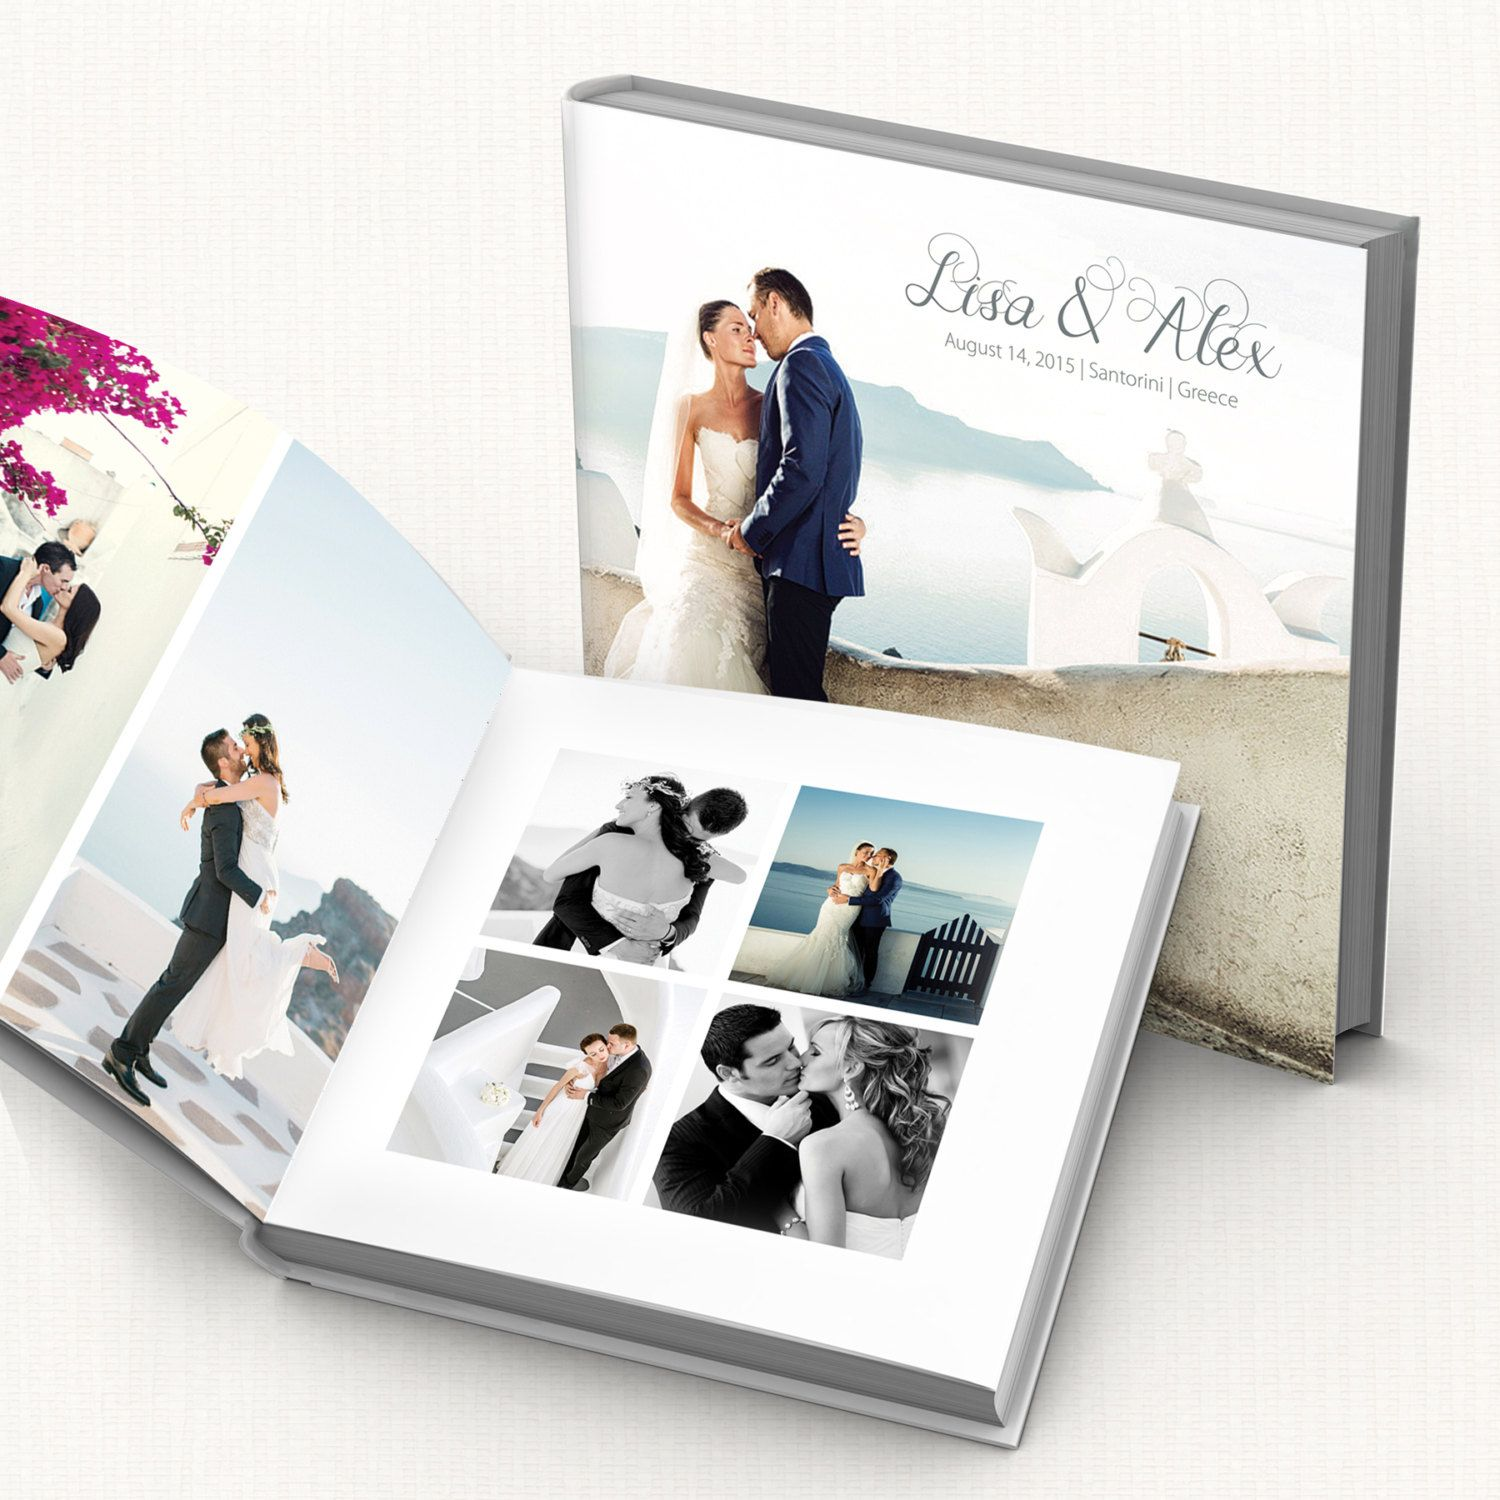 Wedding Album PSD Template. Customizable modern wedding ...